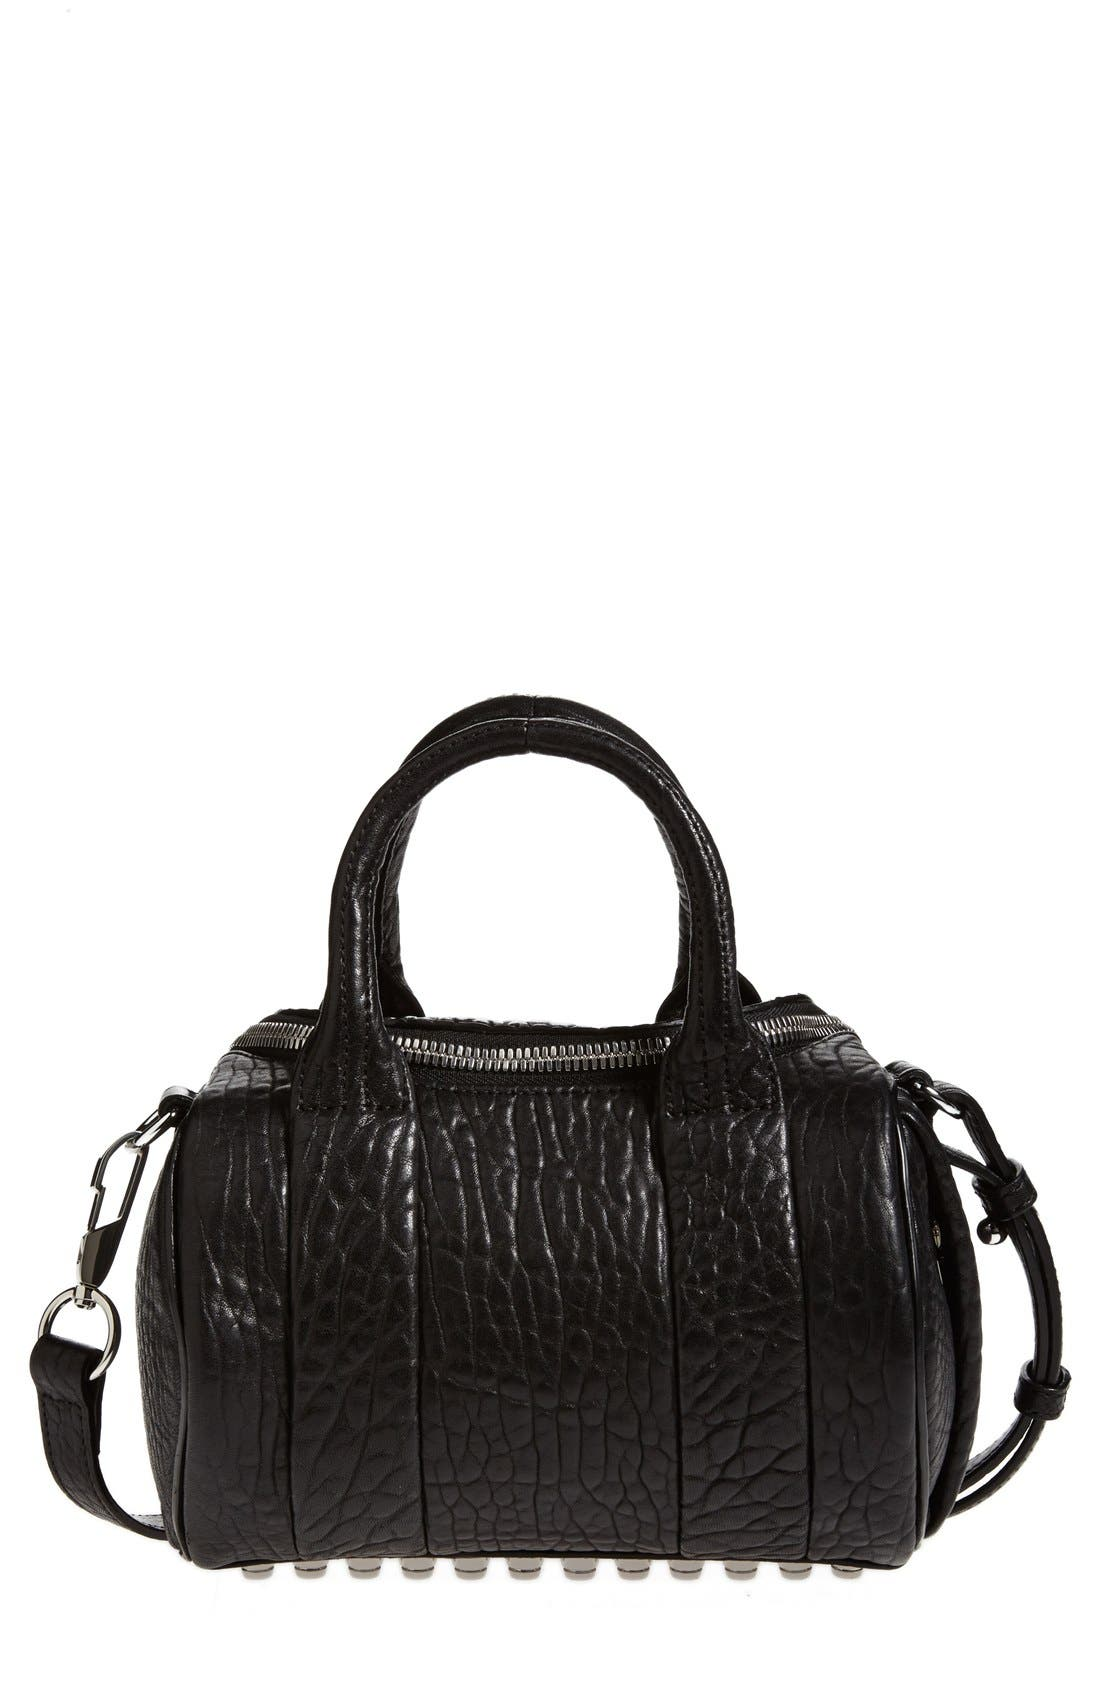 Main Image - Alexander Wang 'Mini Rockie - Nickel' Leather Crossbody Satchel